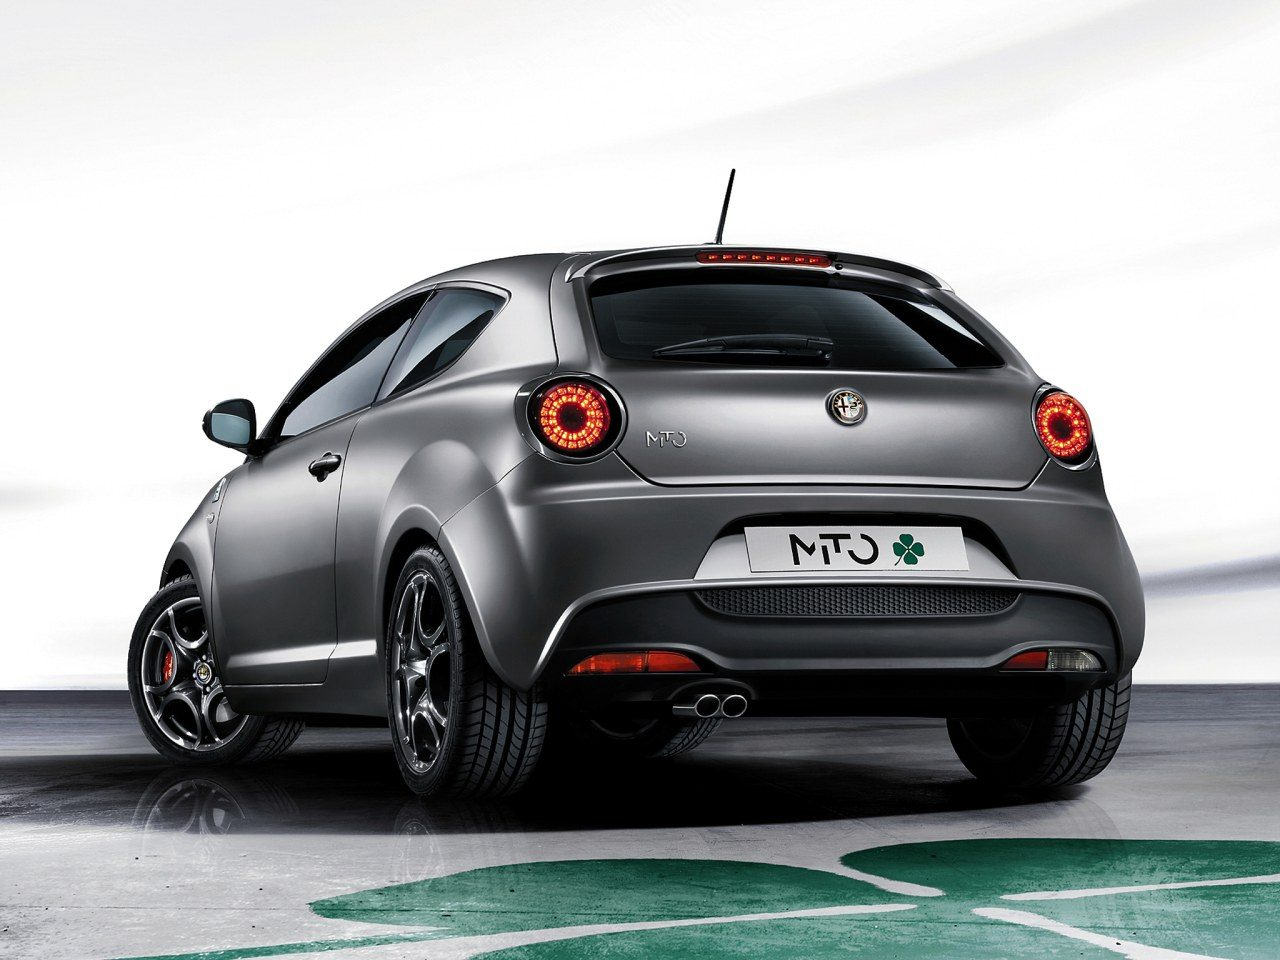 foto alfa romeo mito qv 2014 alfa romeo mito qv 2014 01. Black Bedroom Furniture Sets. Home Design Ideas